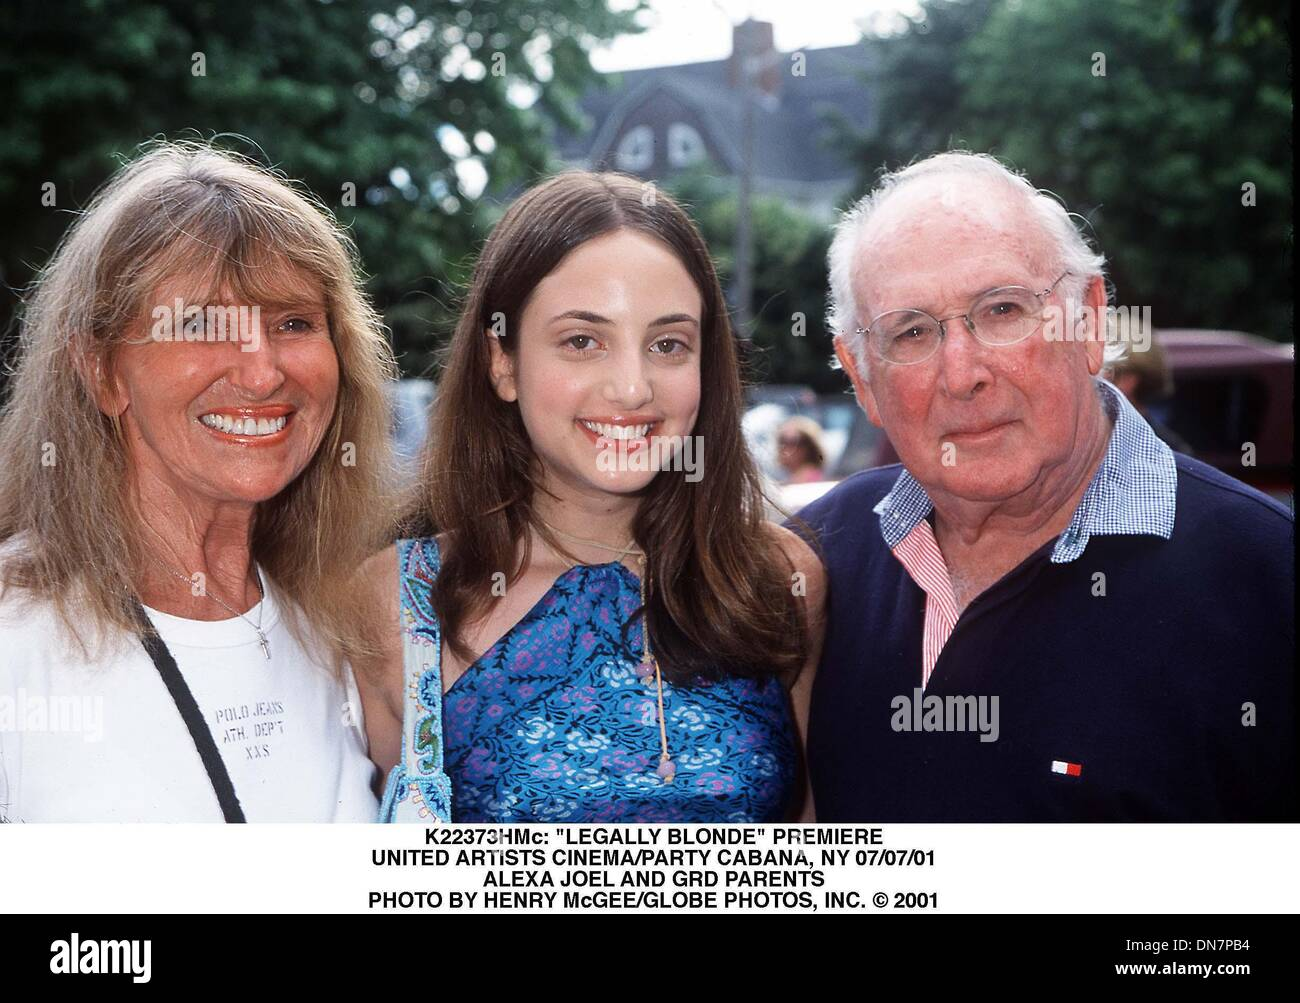 July 7, 2001 - K22373HMc: ''LEGALLY BLONDE'' PREMIERE.UNITED ARTISTS CINEMA/PARTY CABANA, NY 07/07/01.ALEXA JOEL AND GRD PARENTS. HENRY McGEE/   2001(Credit Image: © Globe Photos/ZUMAPRESS.com) - Stock Image